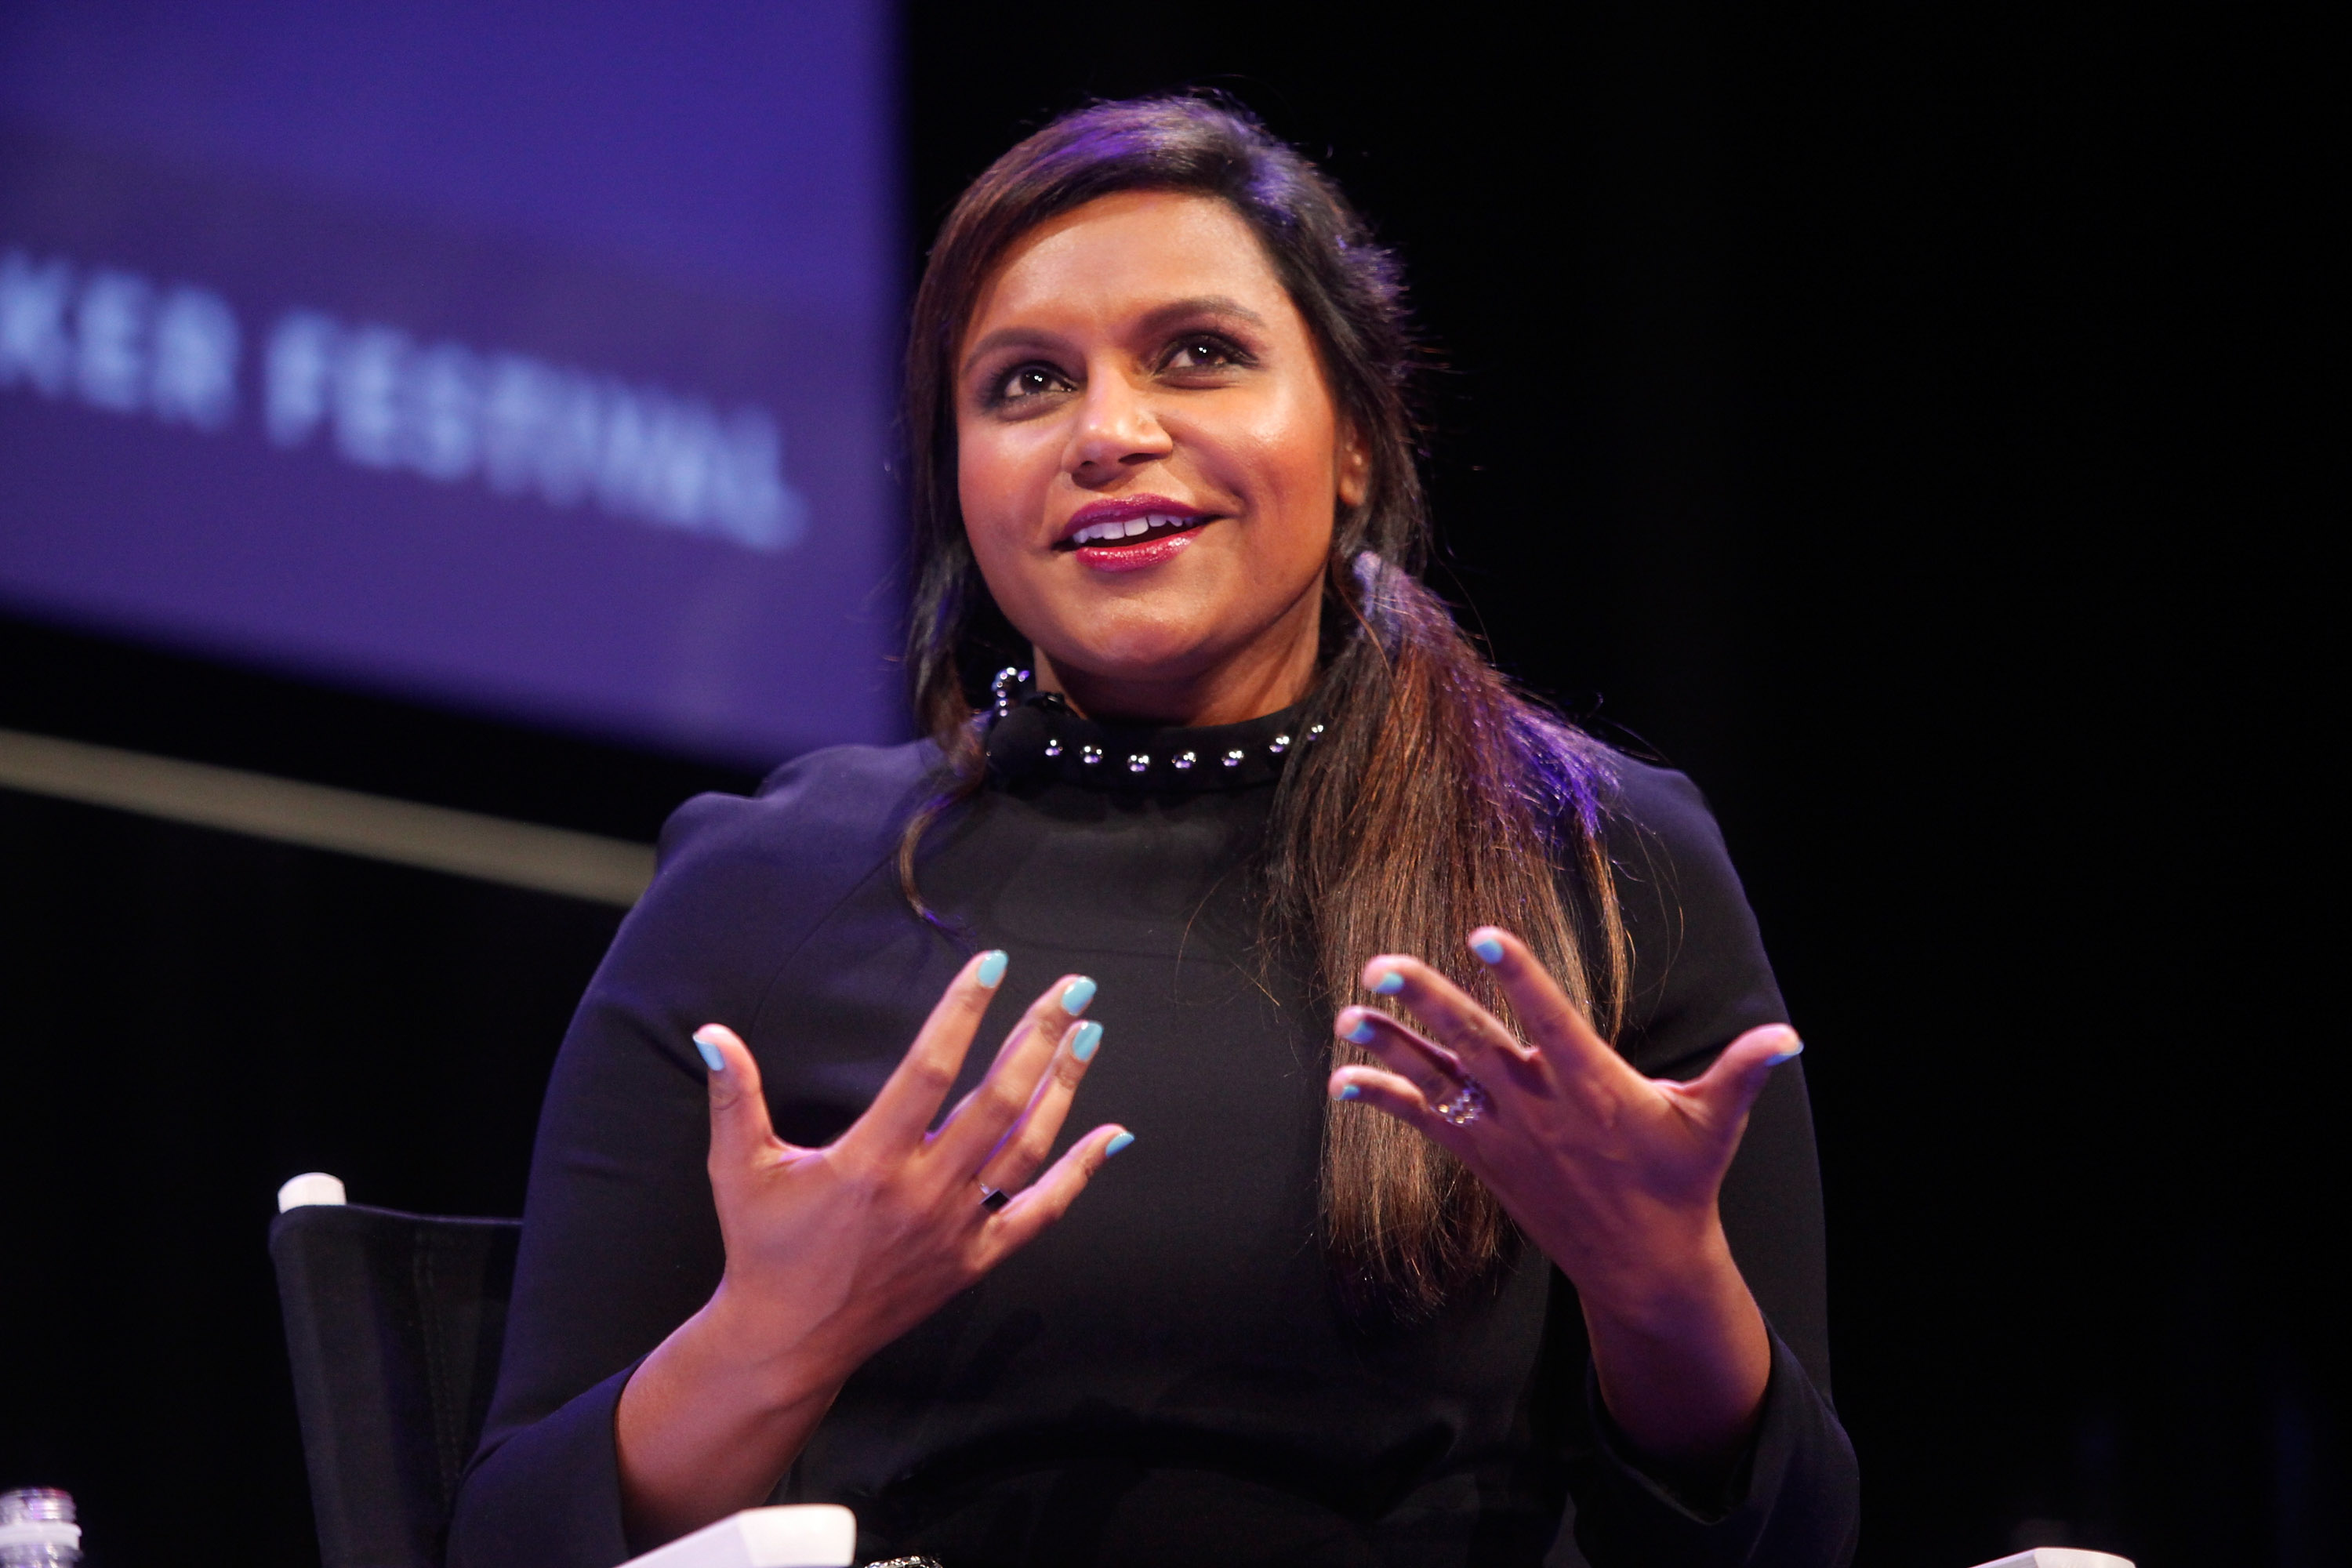 Mindy Kaling facts